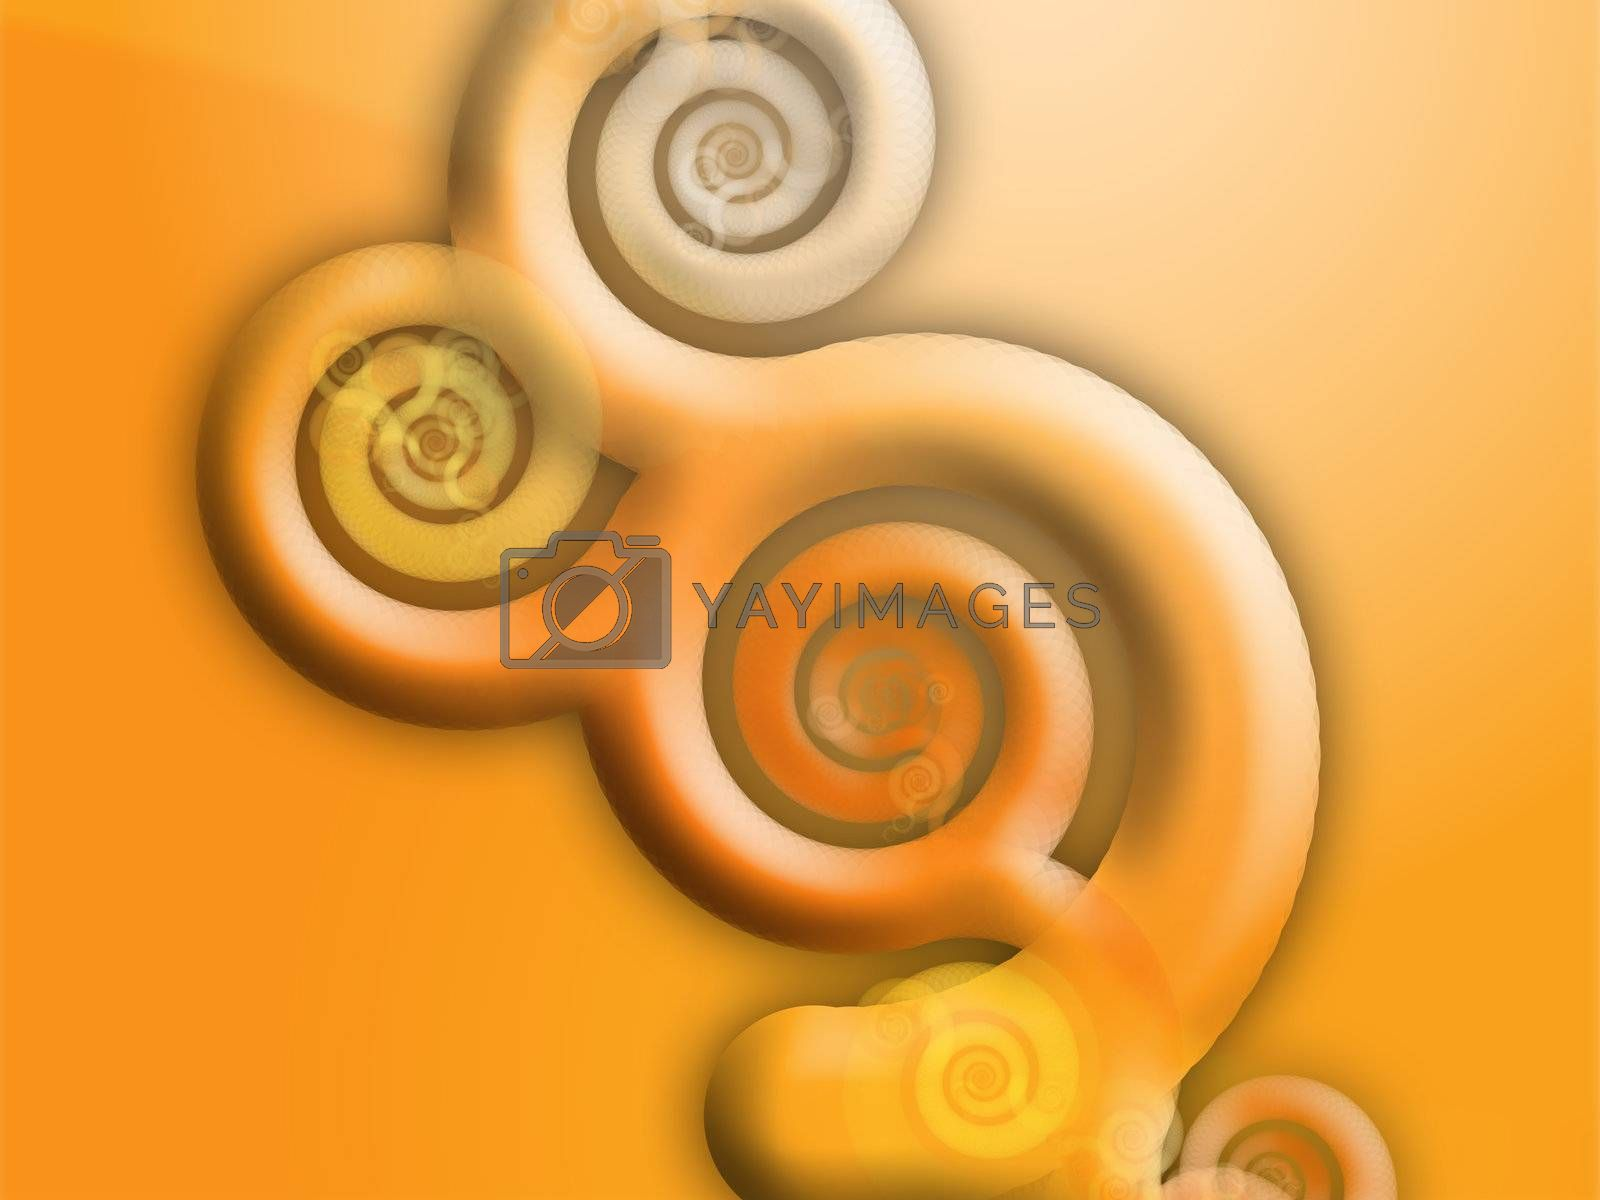 Floral grunge abstract wallpaper design with organic swirling shapes